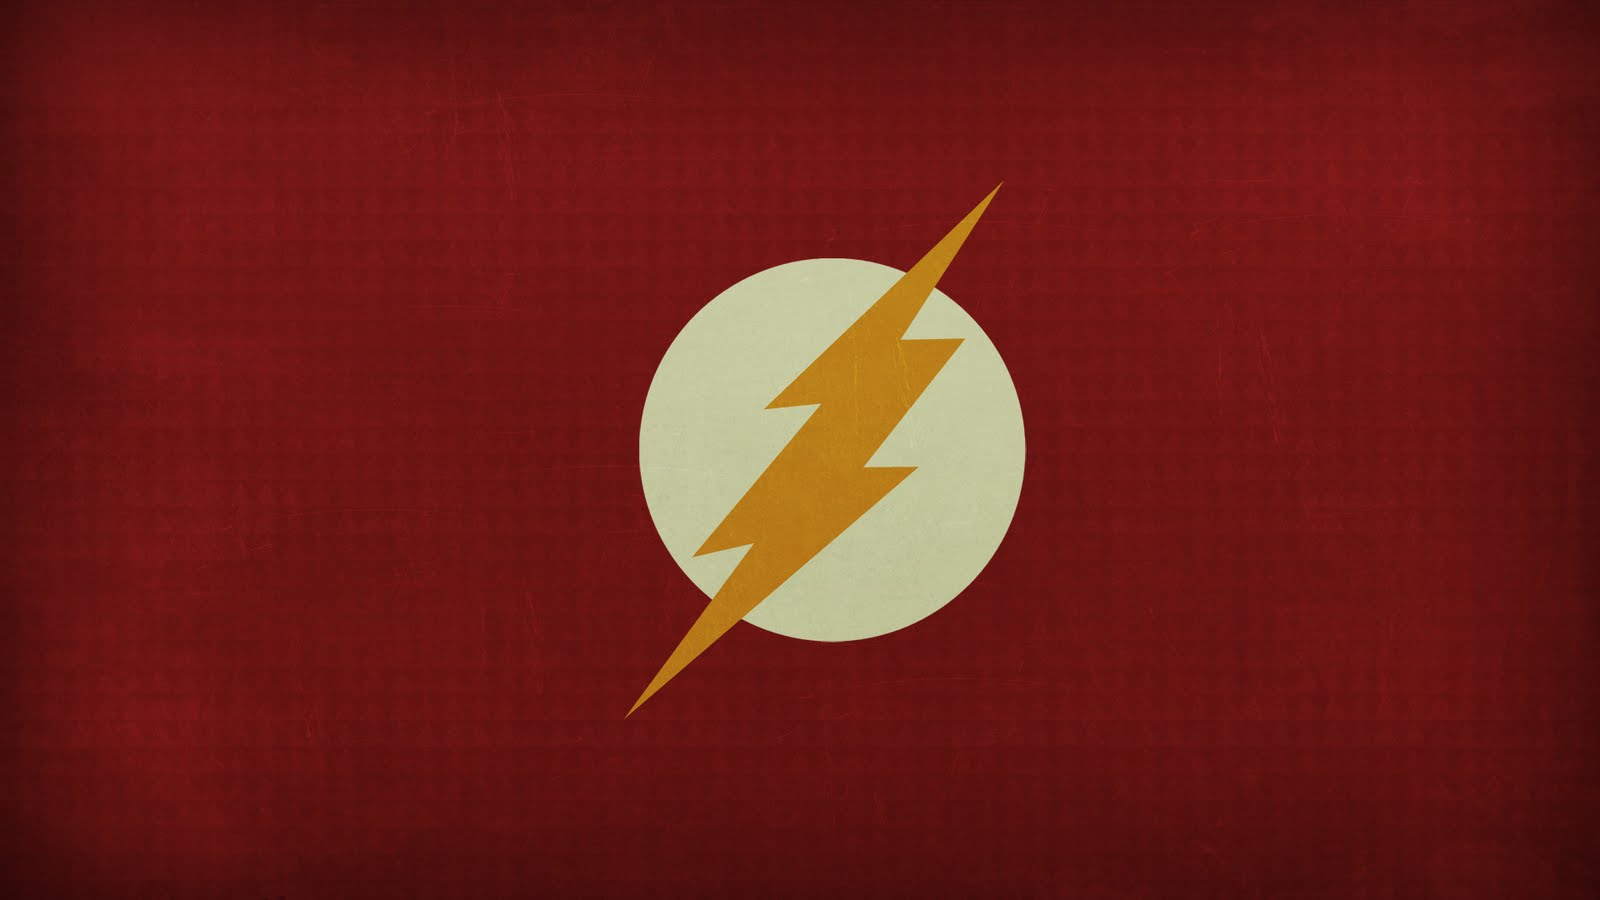 The Flash Logo Wallpaper Justice league wallpaper set 1600x900